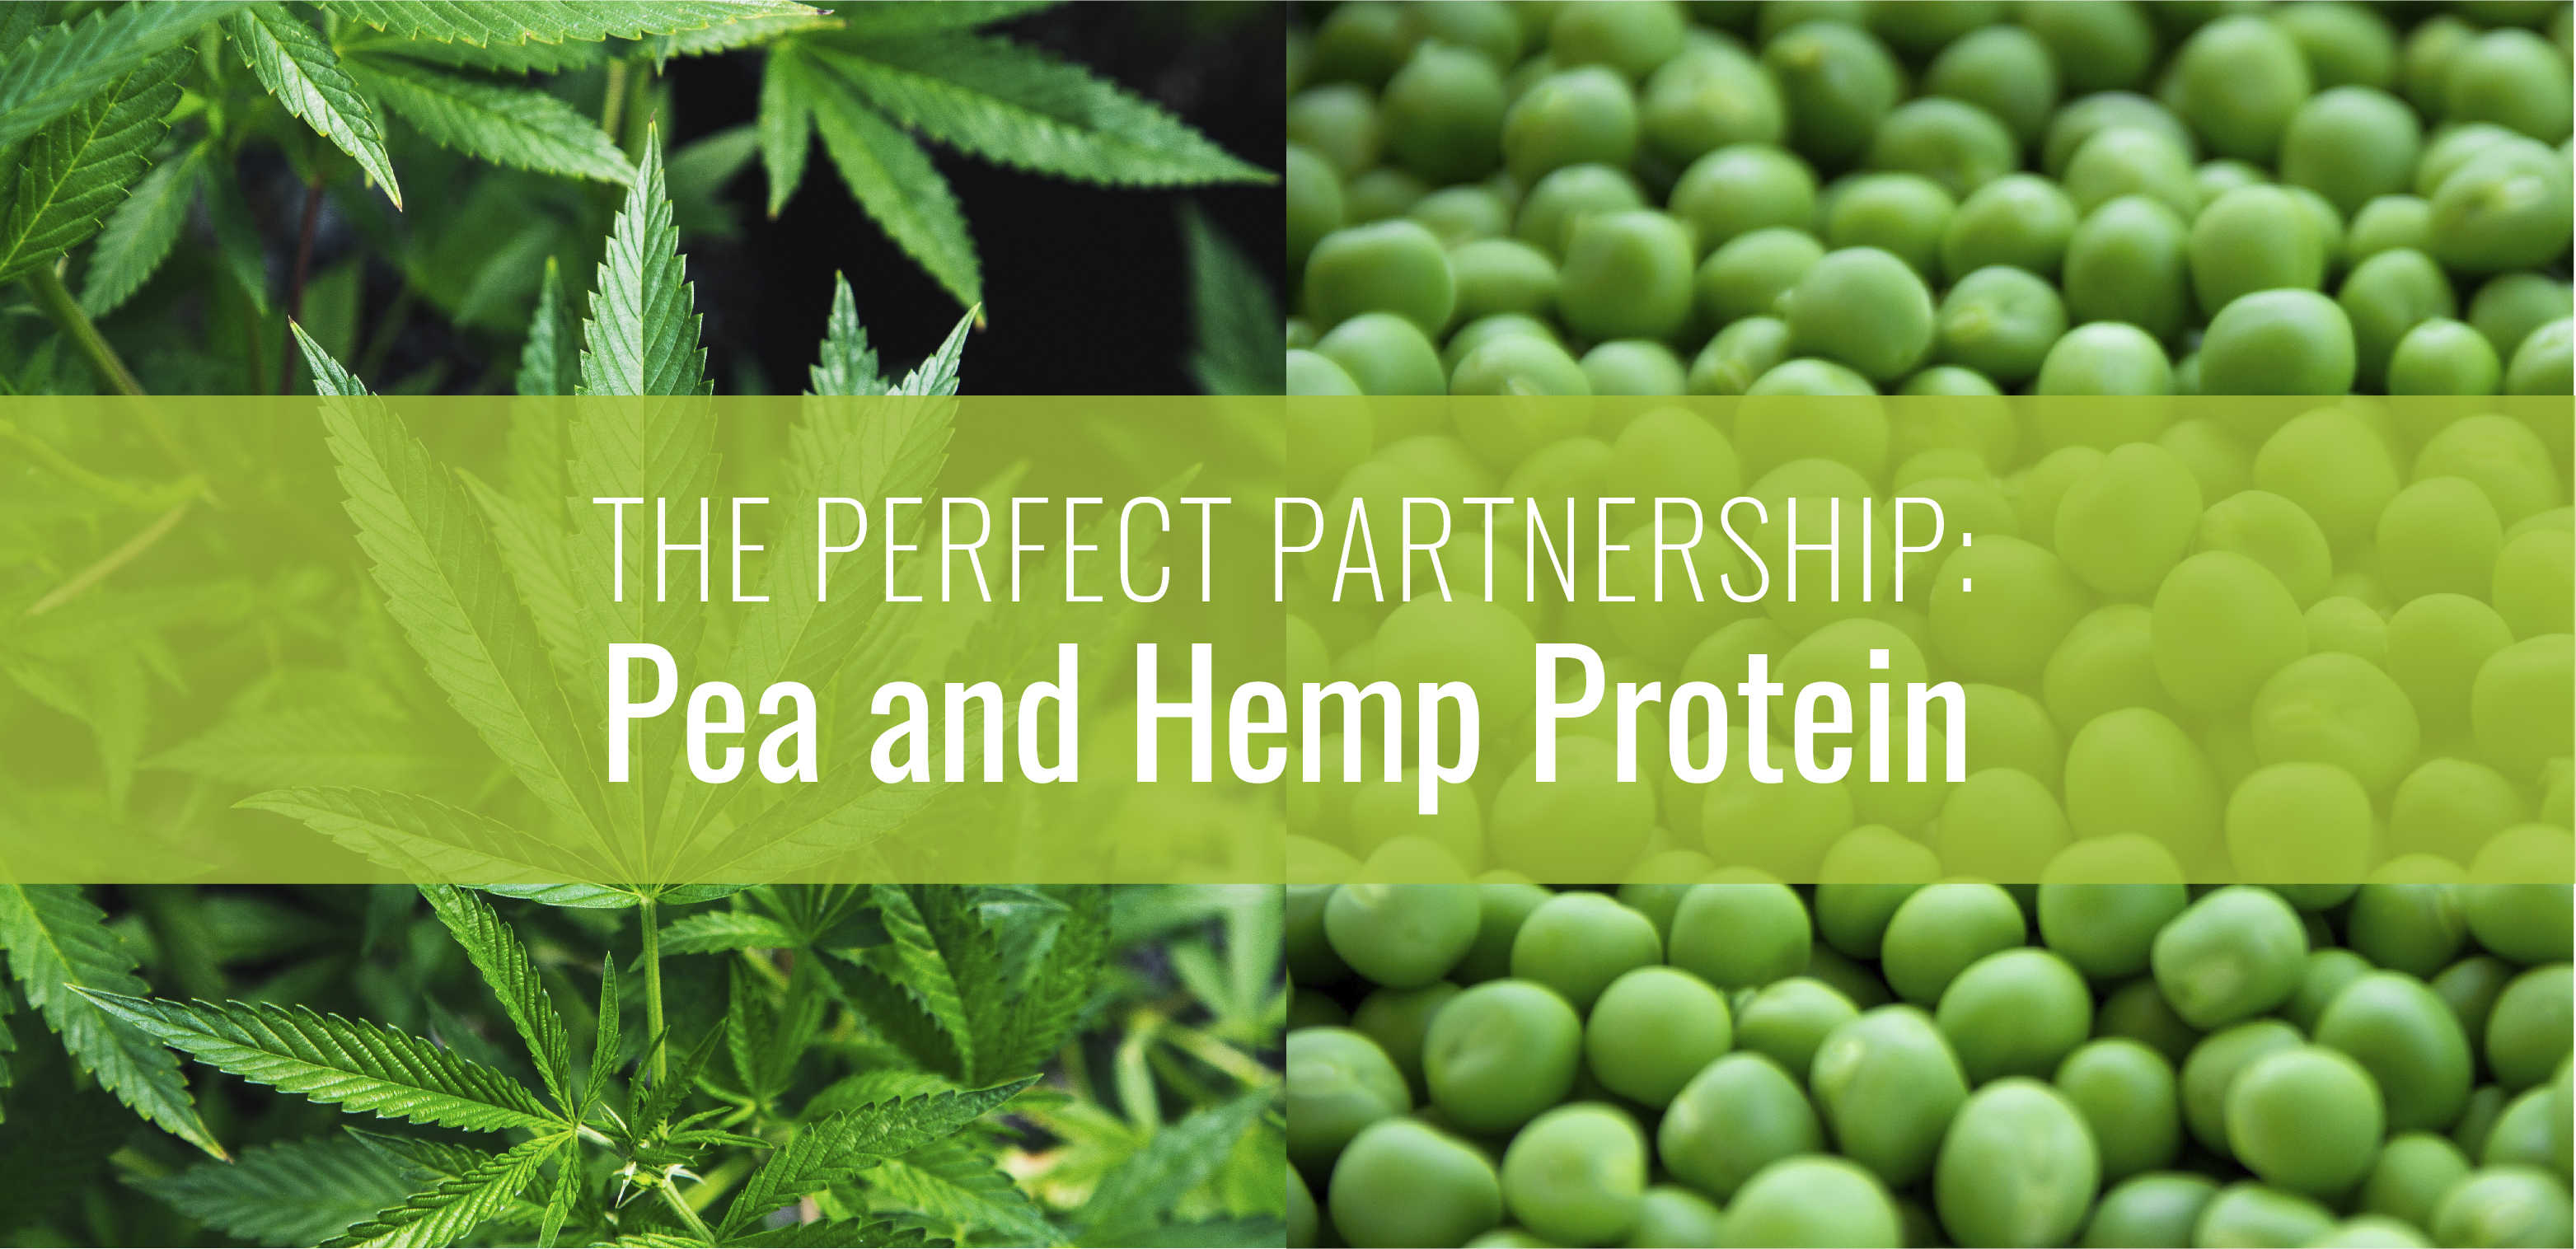 "Image of a Cannabis plant and green peas overlaid with a green bar and the words ""The perfect partnership: pea and hemp protein"""